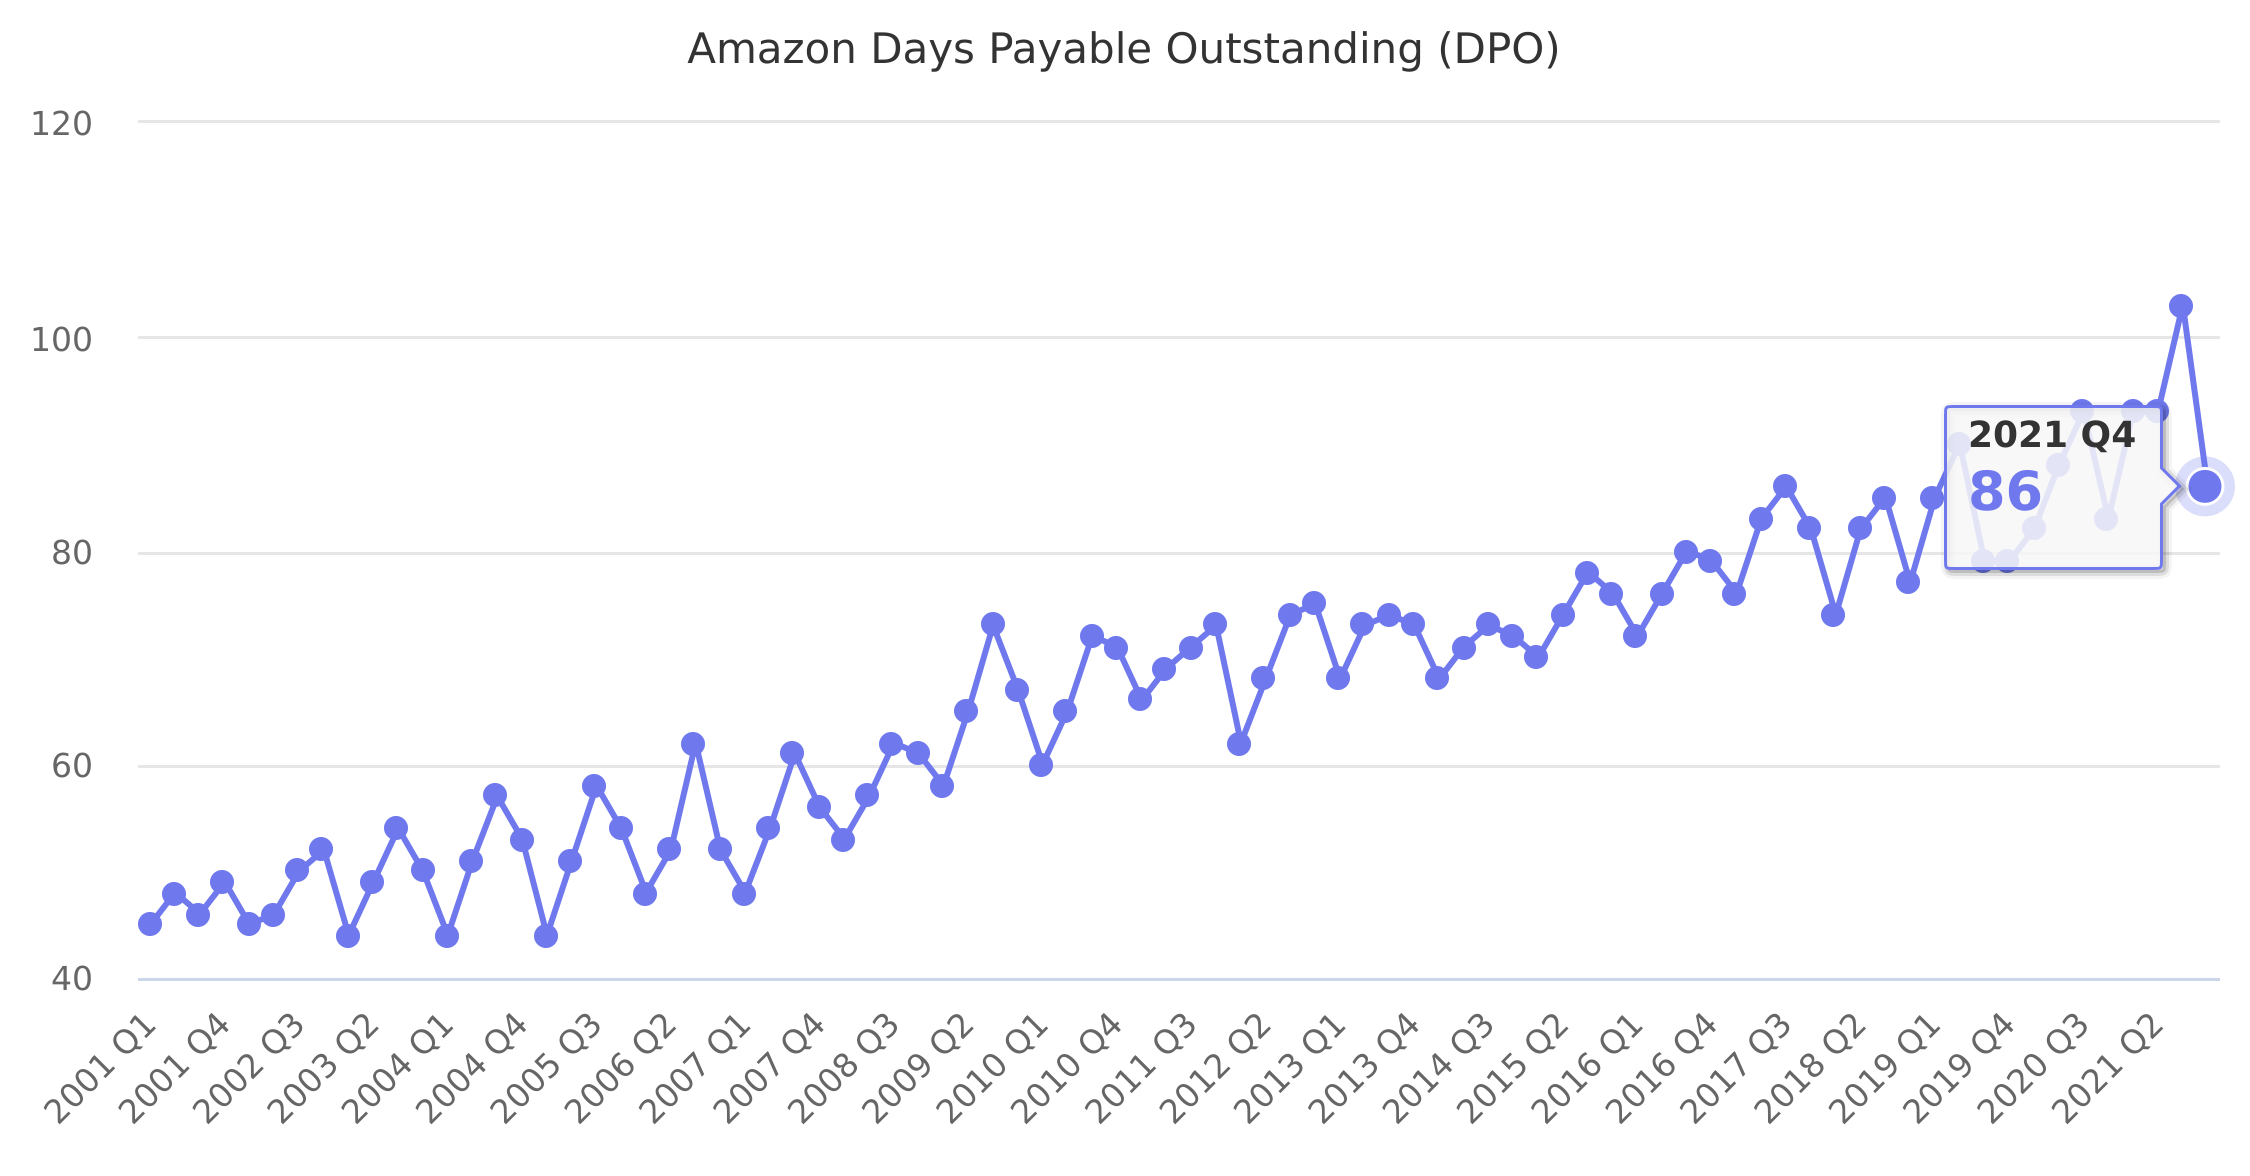 Amazon Days Payable Outstanding (DPO) 2001-2017